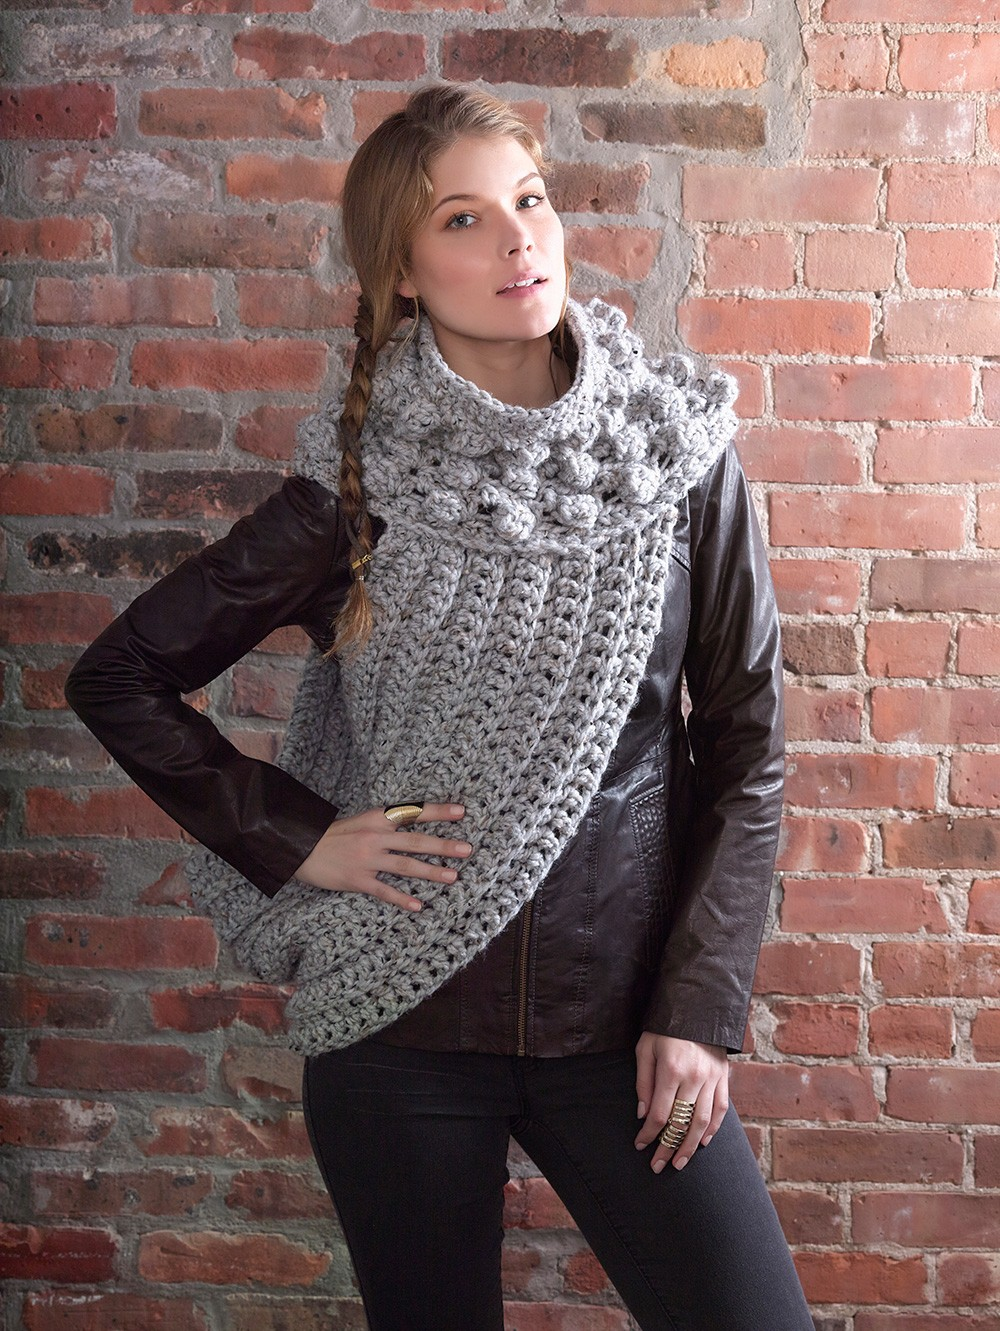 District 12 Cowl Wrap - Inspired By the Cowl Seen in The Hunger Games: Catching Fire - FREE Knit & Crochet Patterns